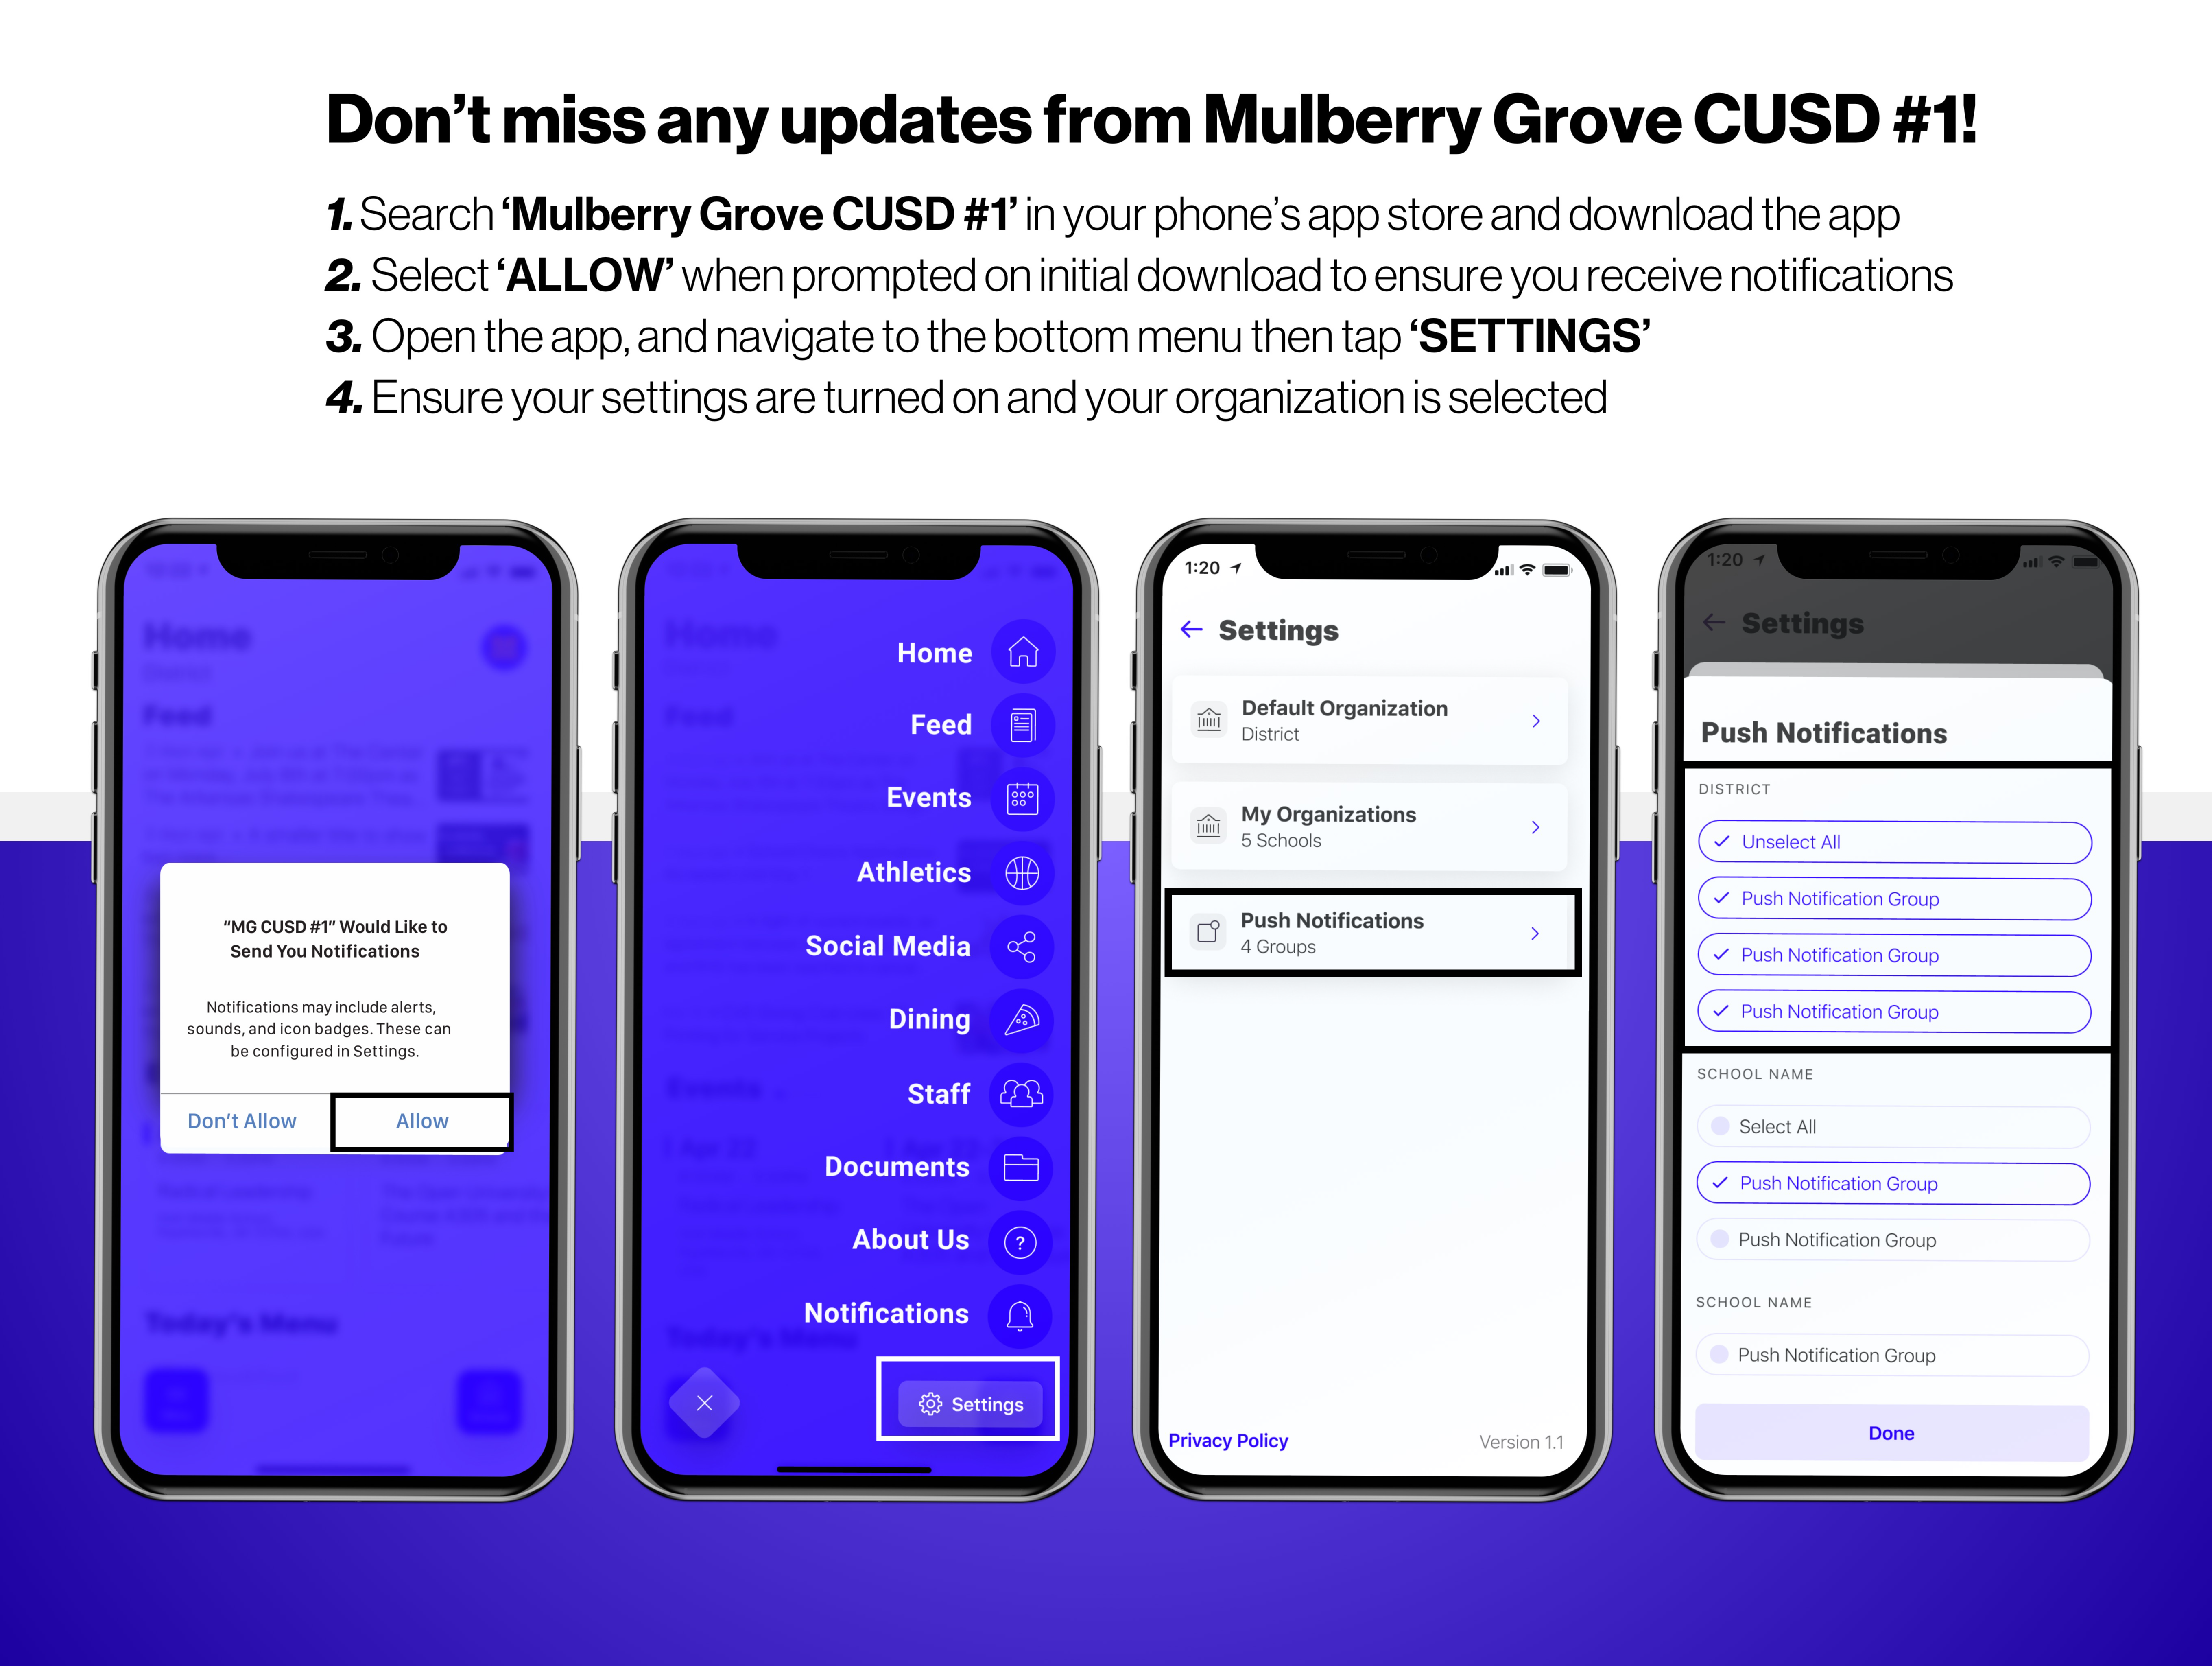 Guide describing how to receive notifications from the mobile app